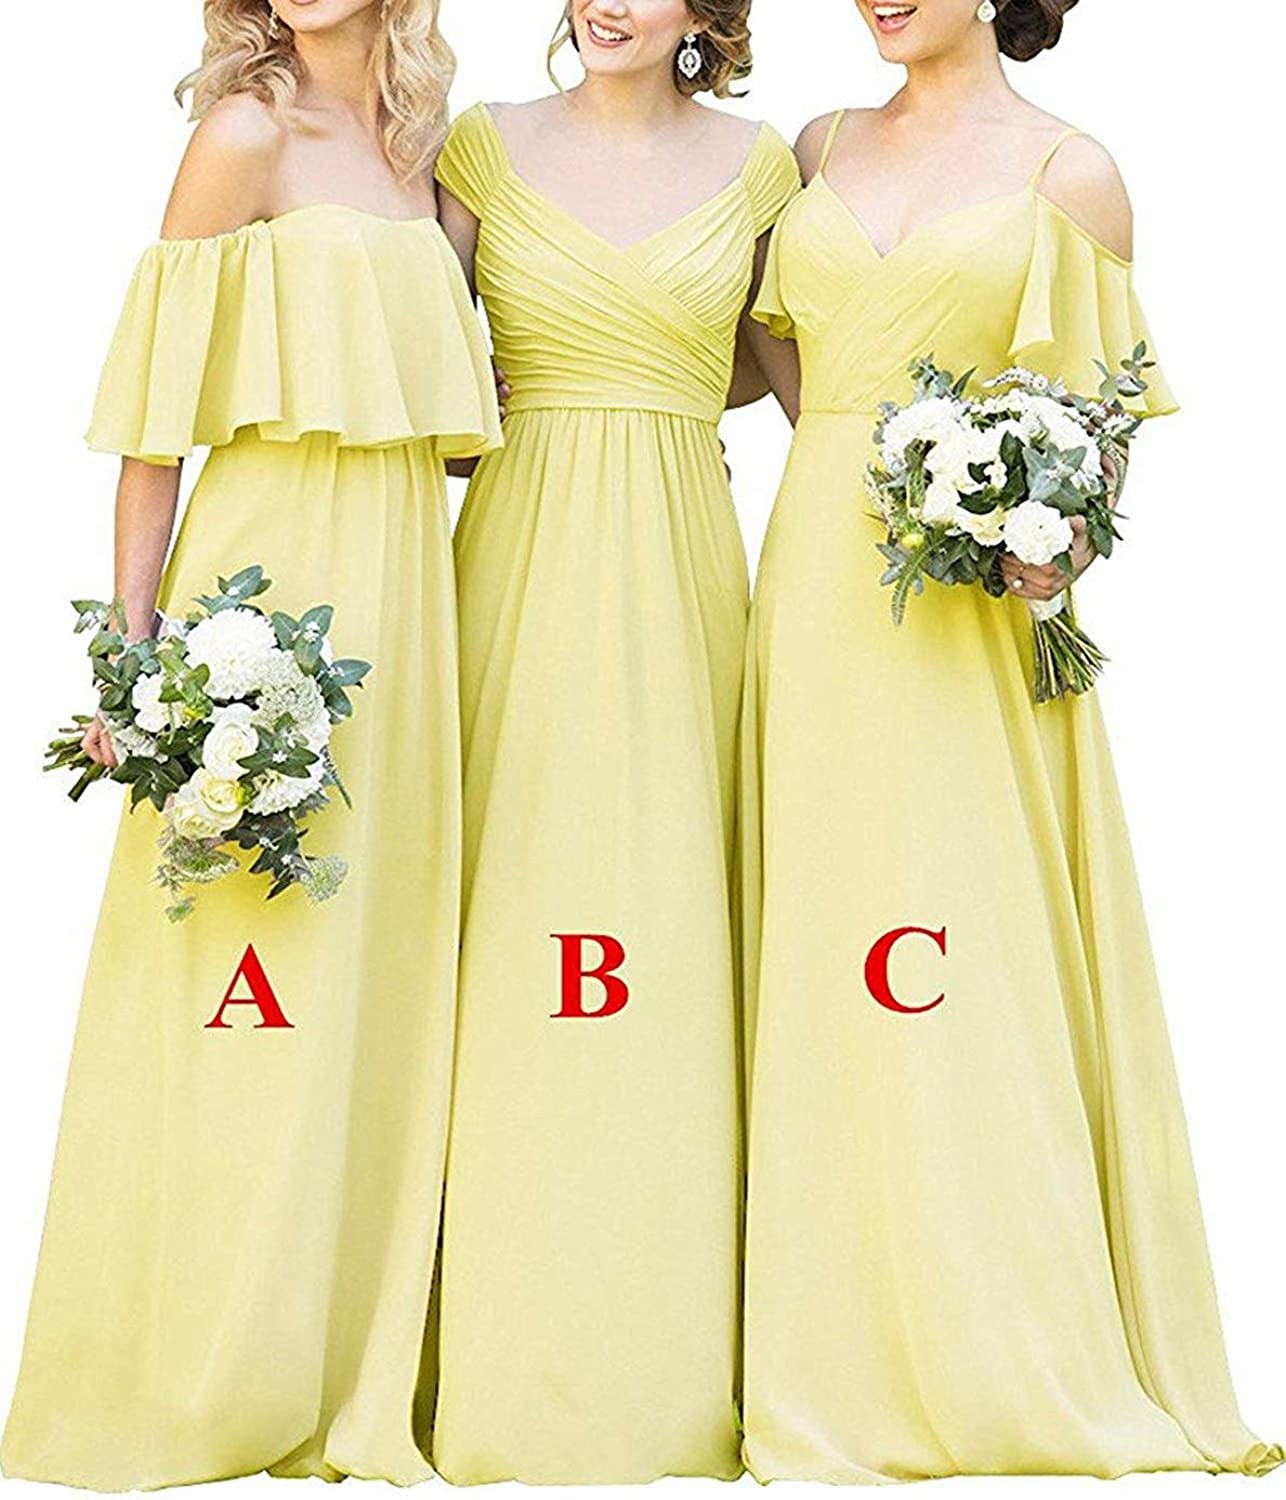 RTTUTED Women's A Line Bridesmaid Dresses Long Wedding Party Prom Evening Gowns